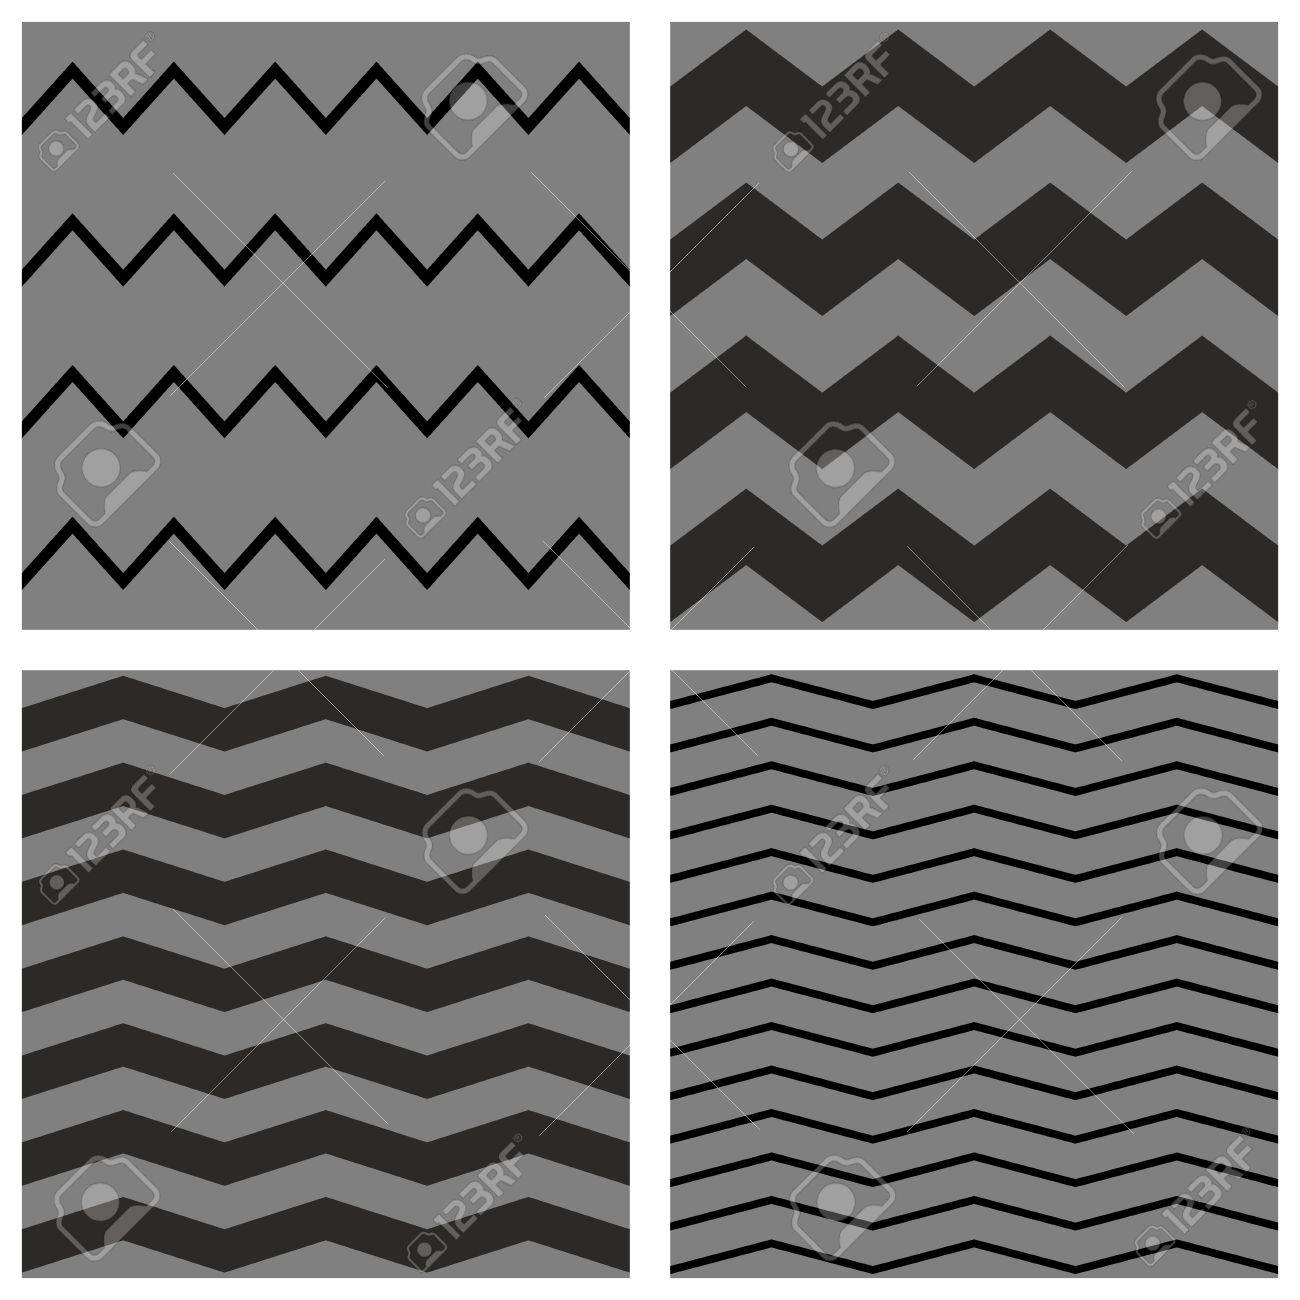 chevron tile vector pattern set with black and gray zig zag background royalty free cliparts vectors and stock illustration image 39770049